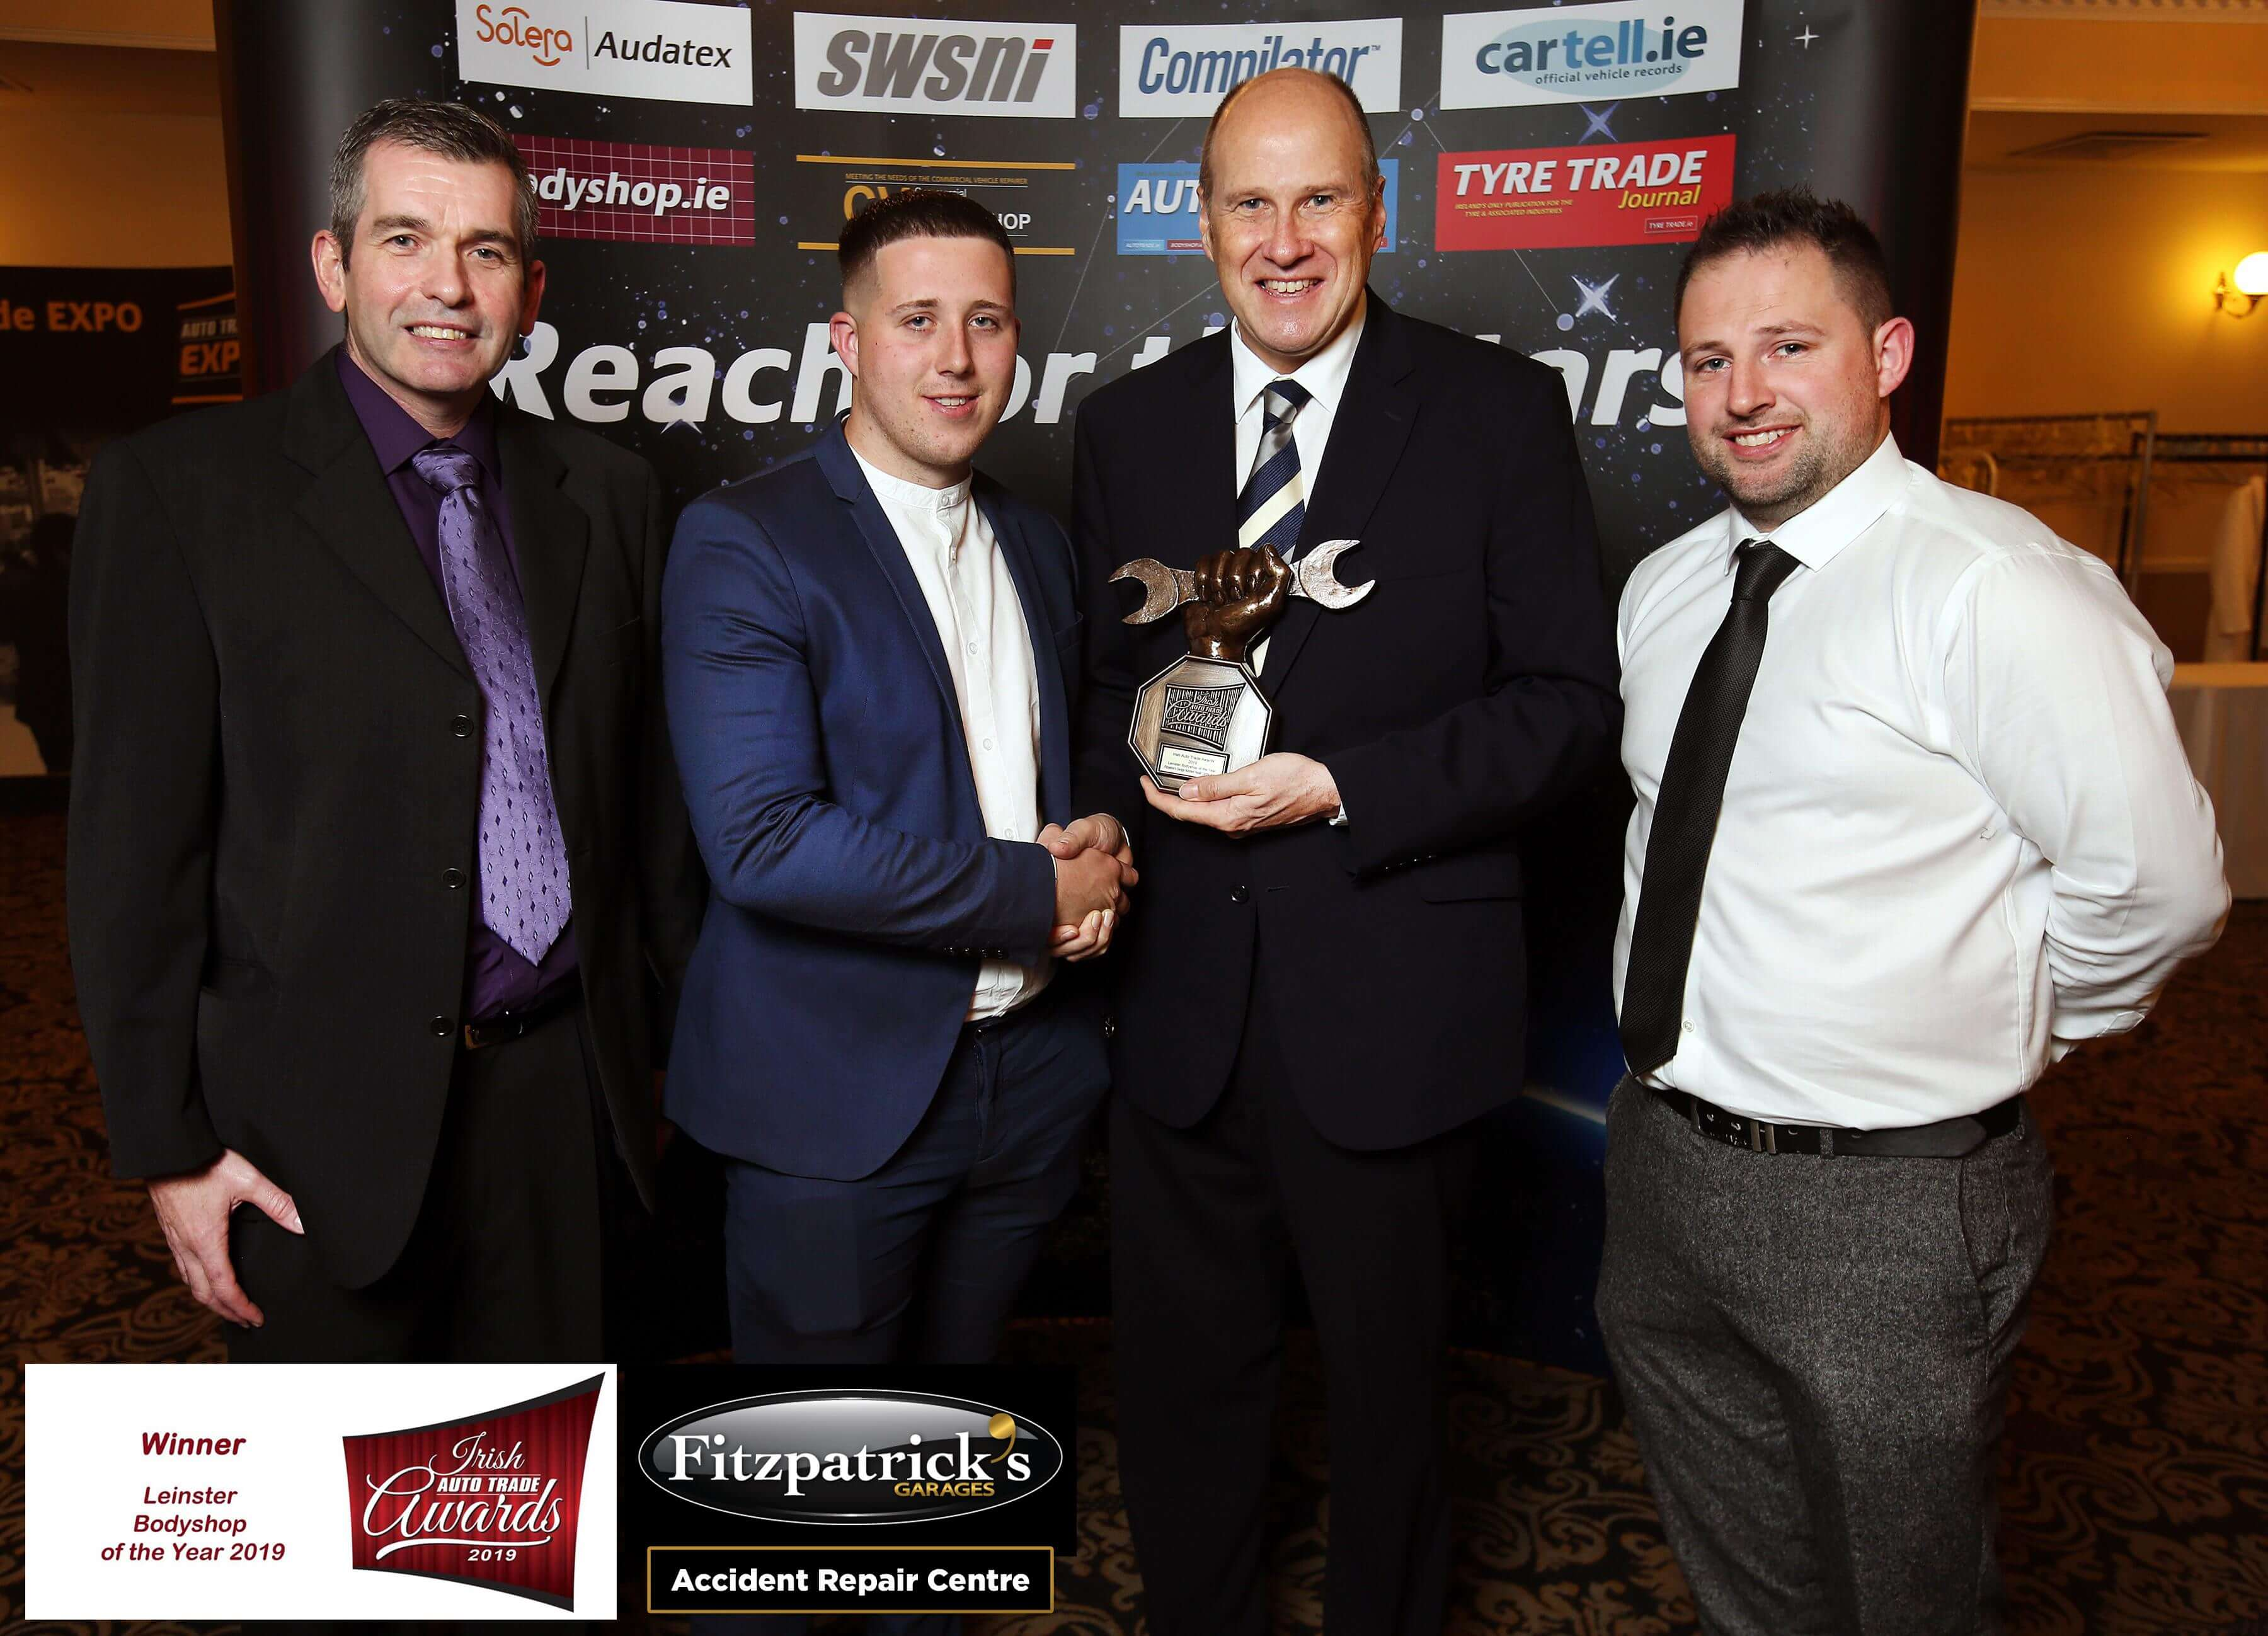 Leinster Bodyshop of the Year Award 2019